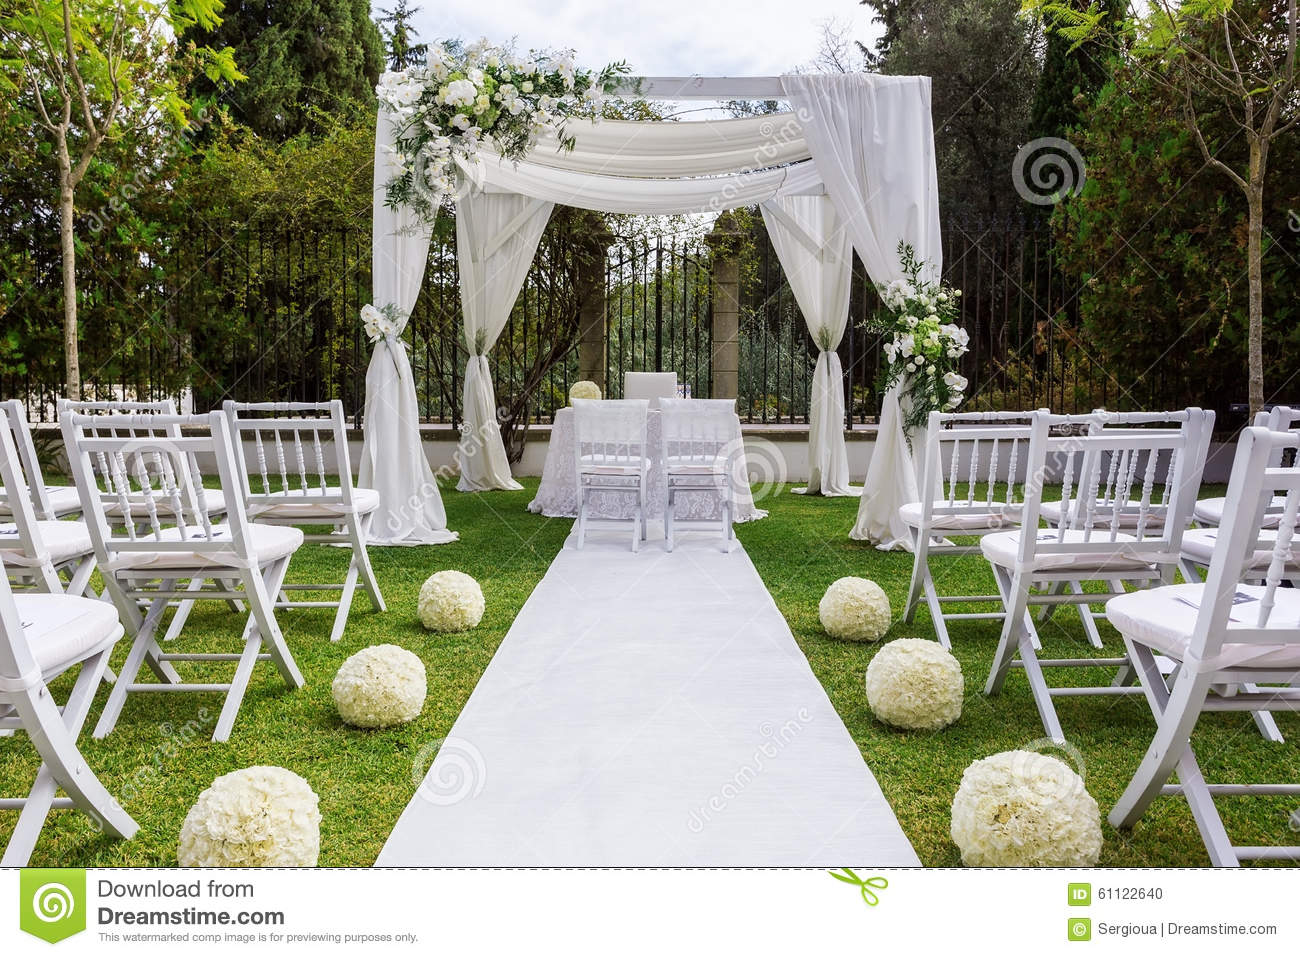 Wedding Path And Decorations For Newlyweds In Nature In